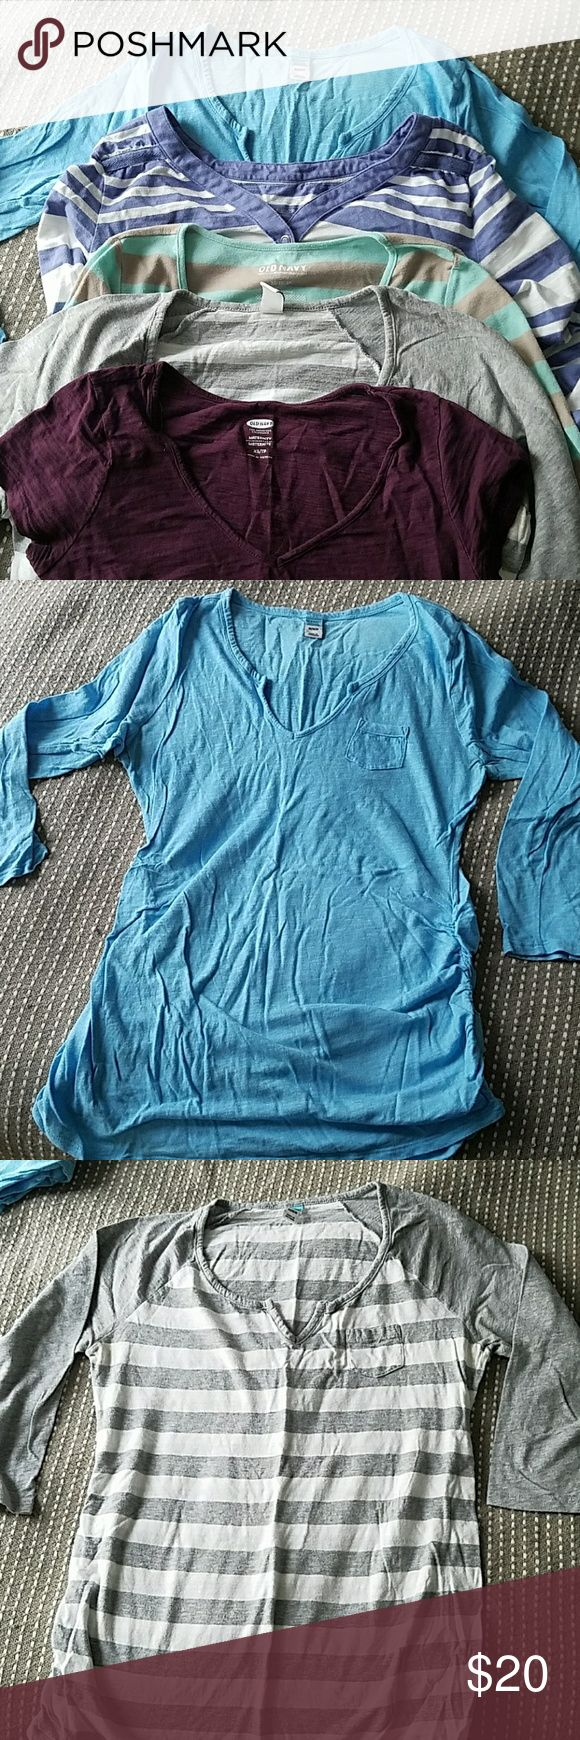 Maternity Top Bundle Blue solid long sleeve - Old Navy Maternity M  White and Grey striped 3/4 sleeve - Old Navy Maternity M  mint and tan long sleeve - Old Navy Maternity M  Purple and White Roll Up Sleeve - Liz Lange Maternity S  Purple T - Old Navy Maternity XS  Even though the sizes range...I usually wear an XS/S and fit into all of these during the stages of my pregnancy.   Happy to sell you just one, if you're interested. Old Navy Tops